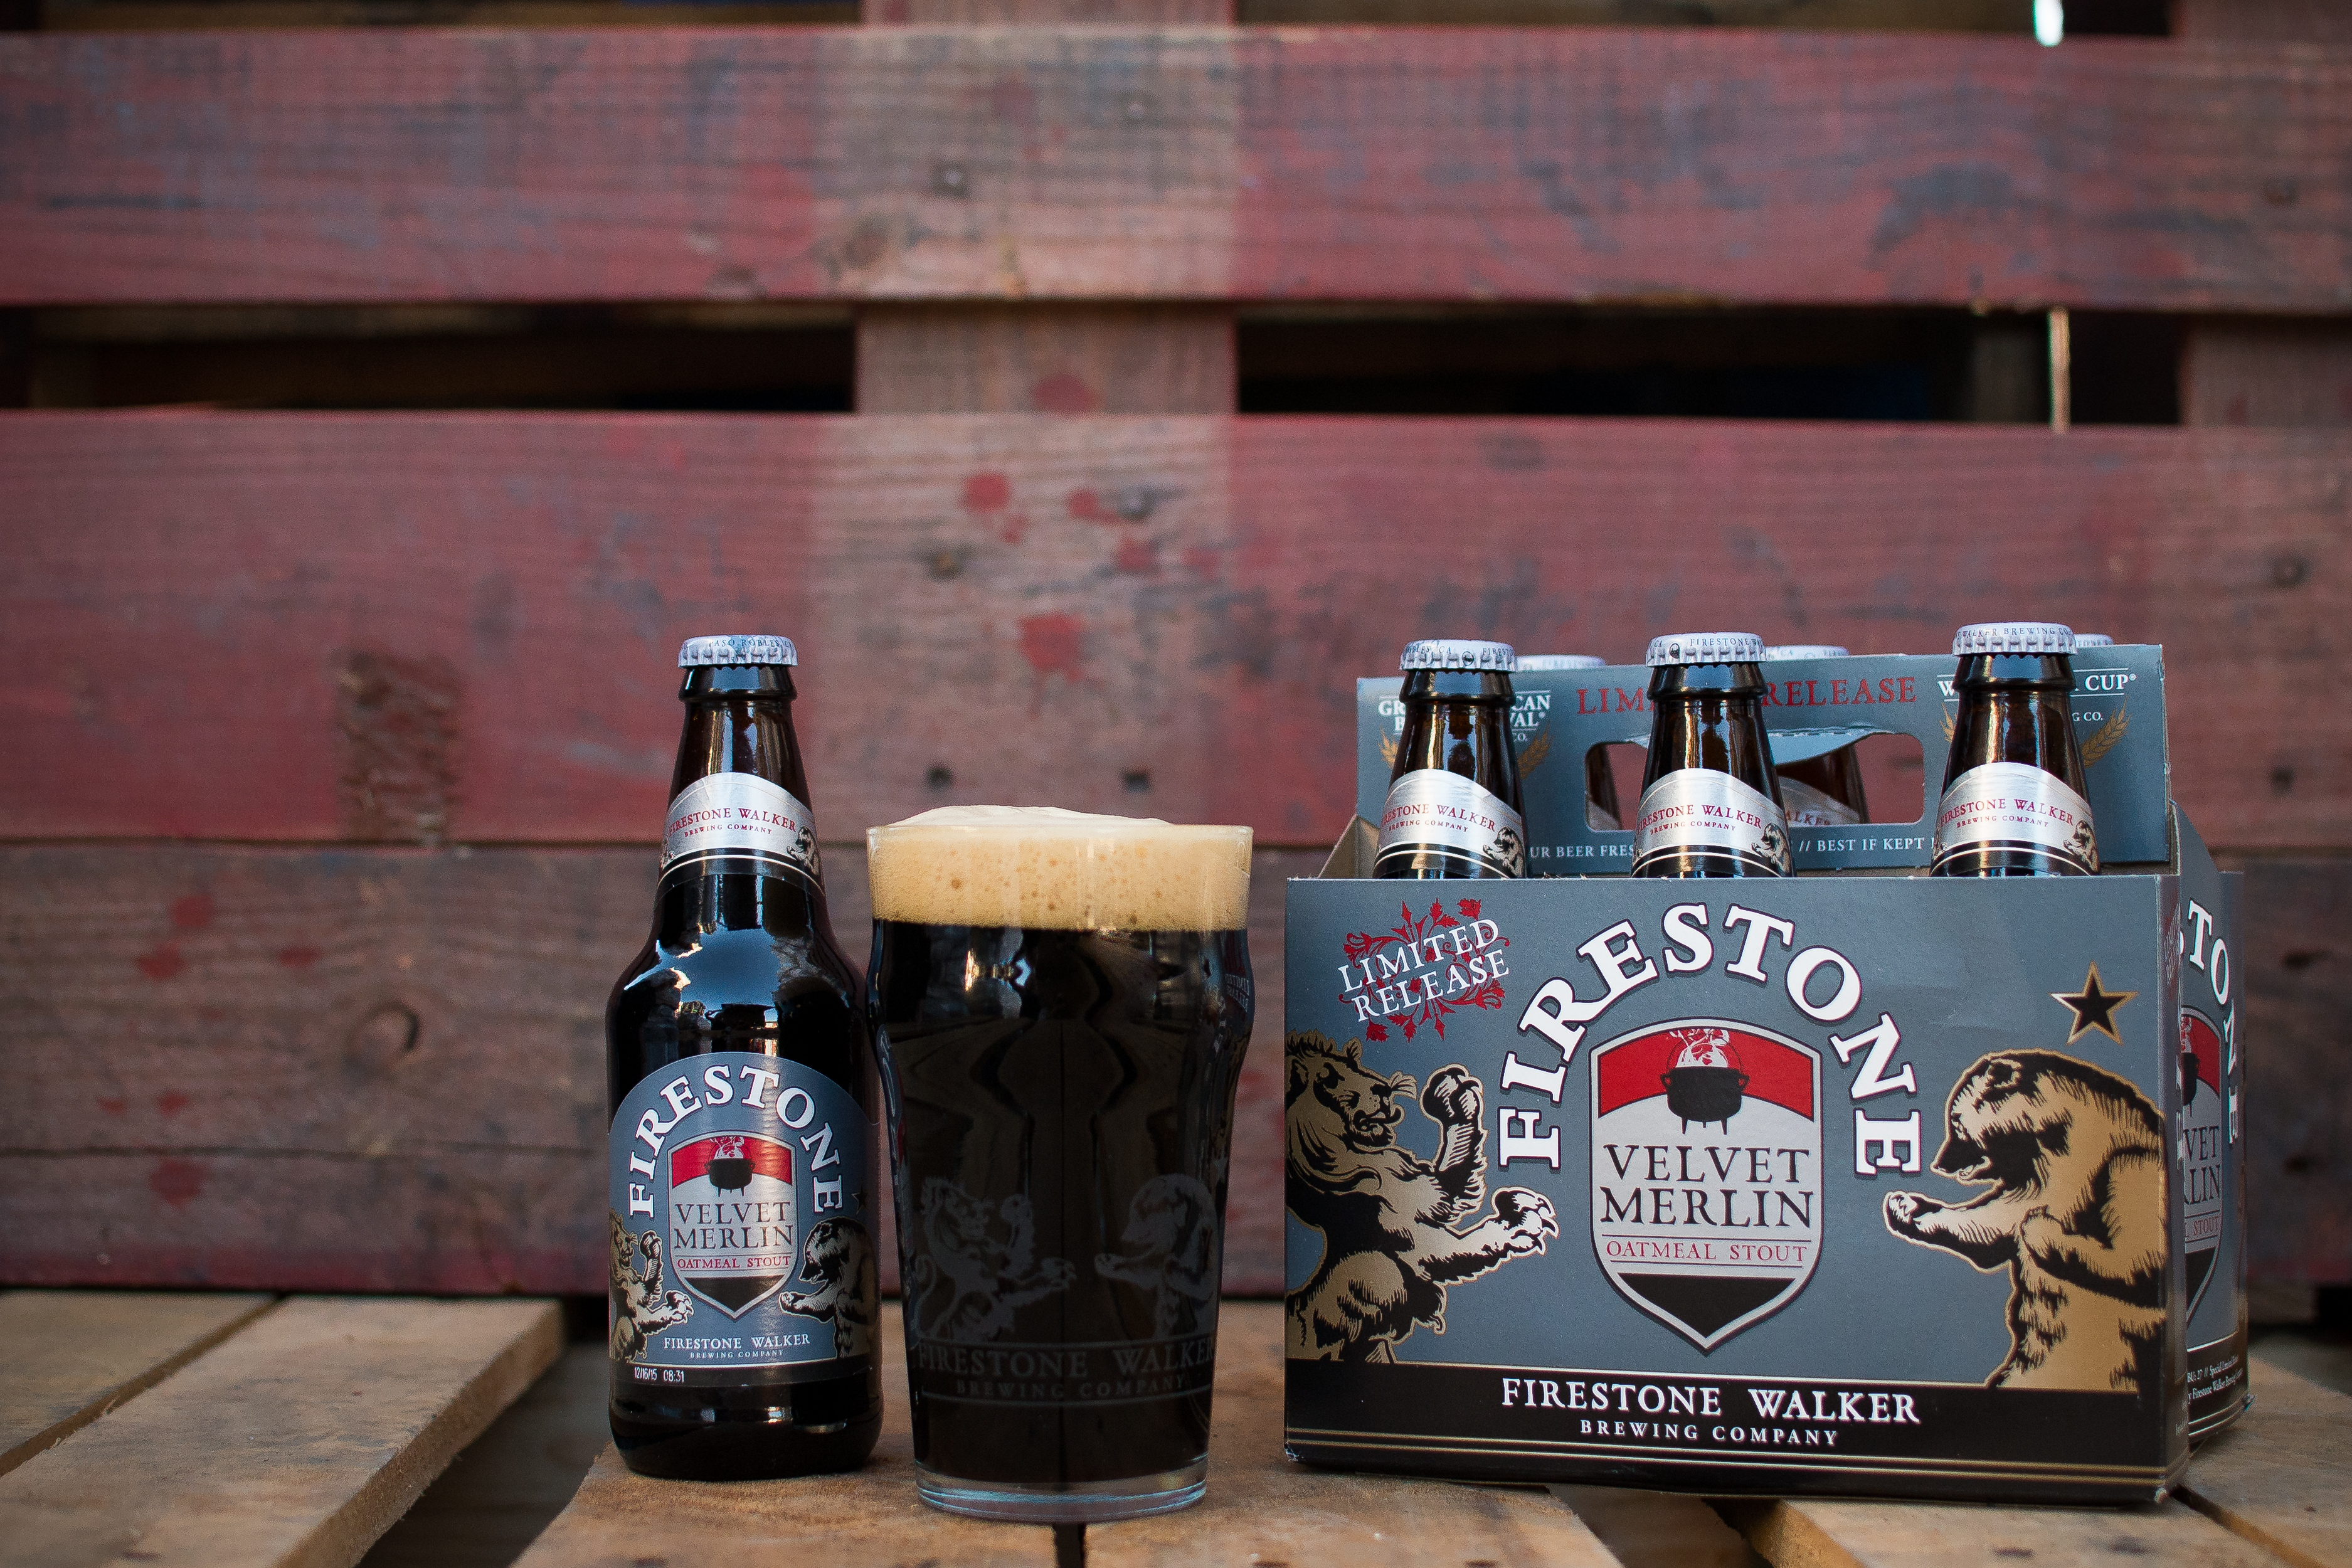 Limited release six packs of Firestone Walker Velvet Merlin. (photo by Nick Gingold)